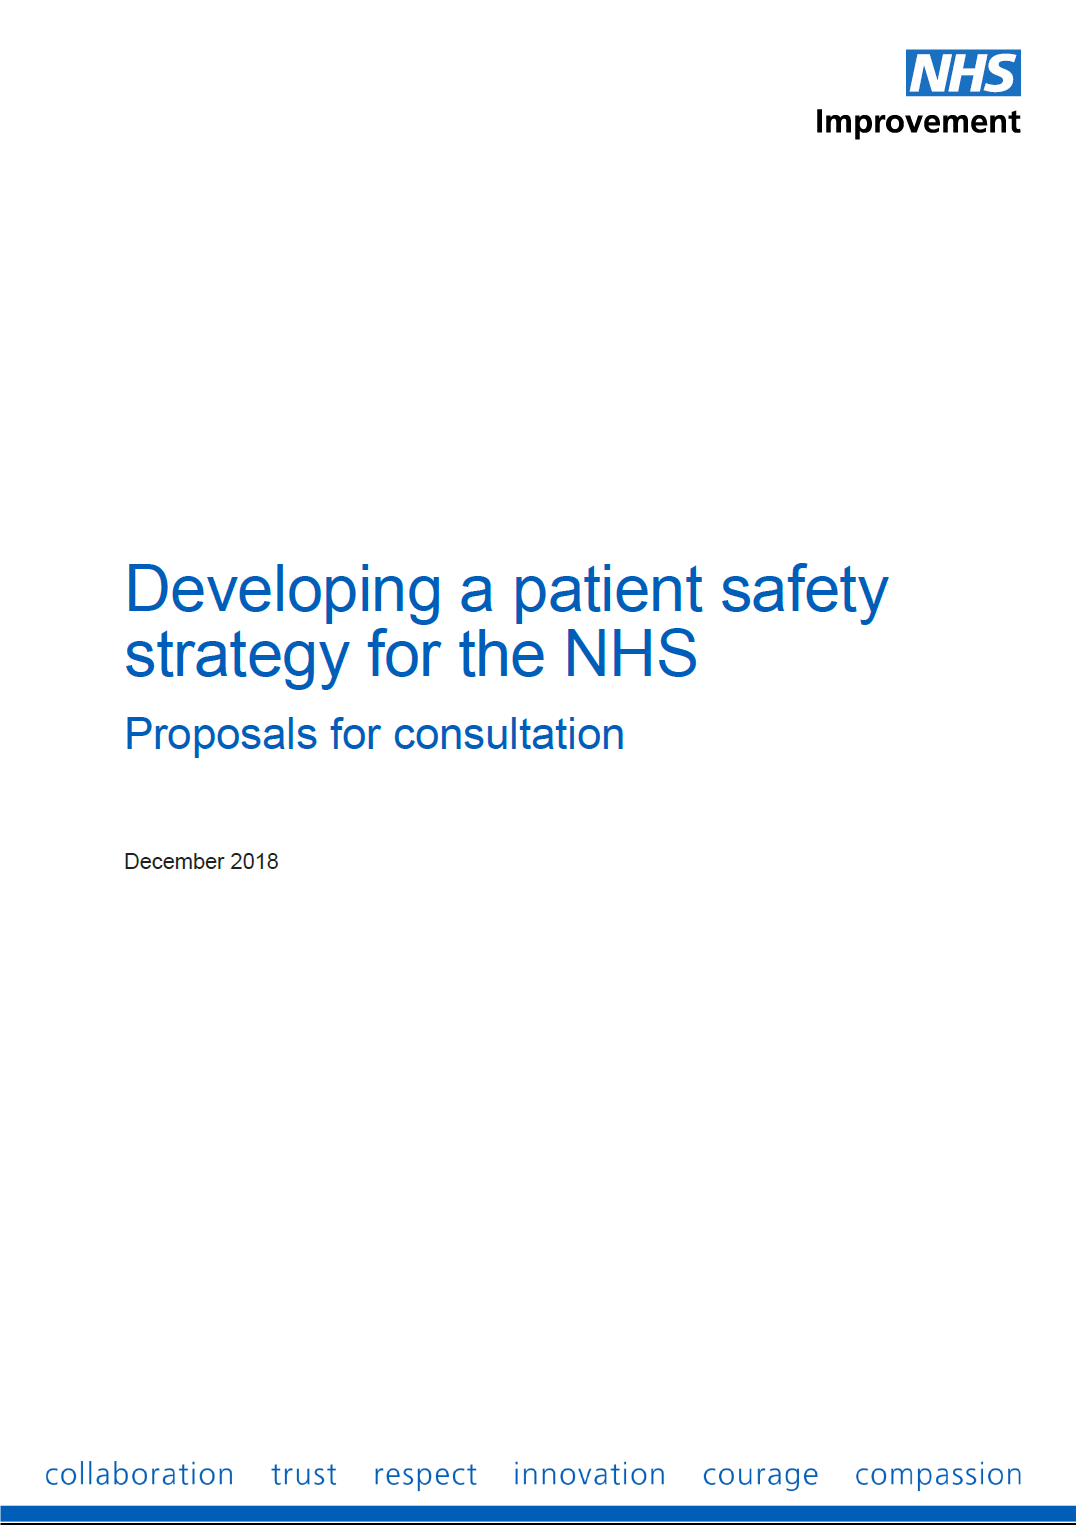 New government Patient Safety Strategy Consultation